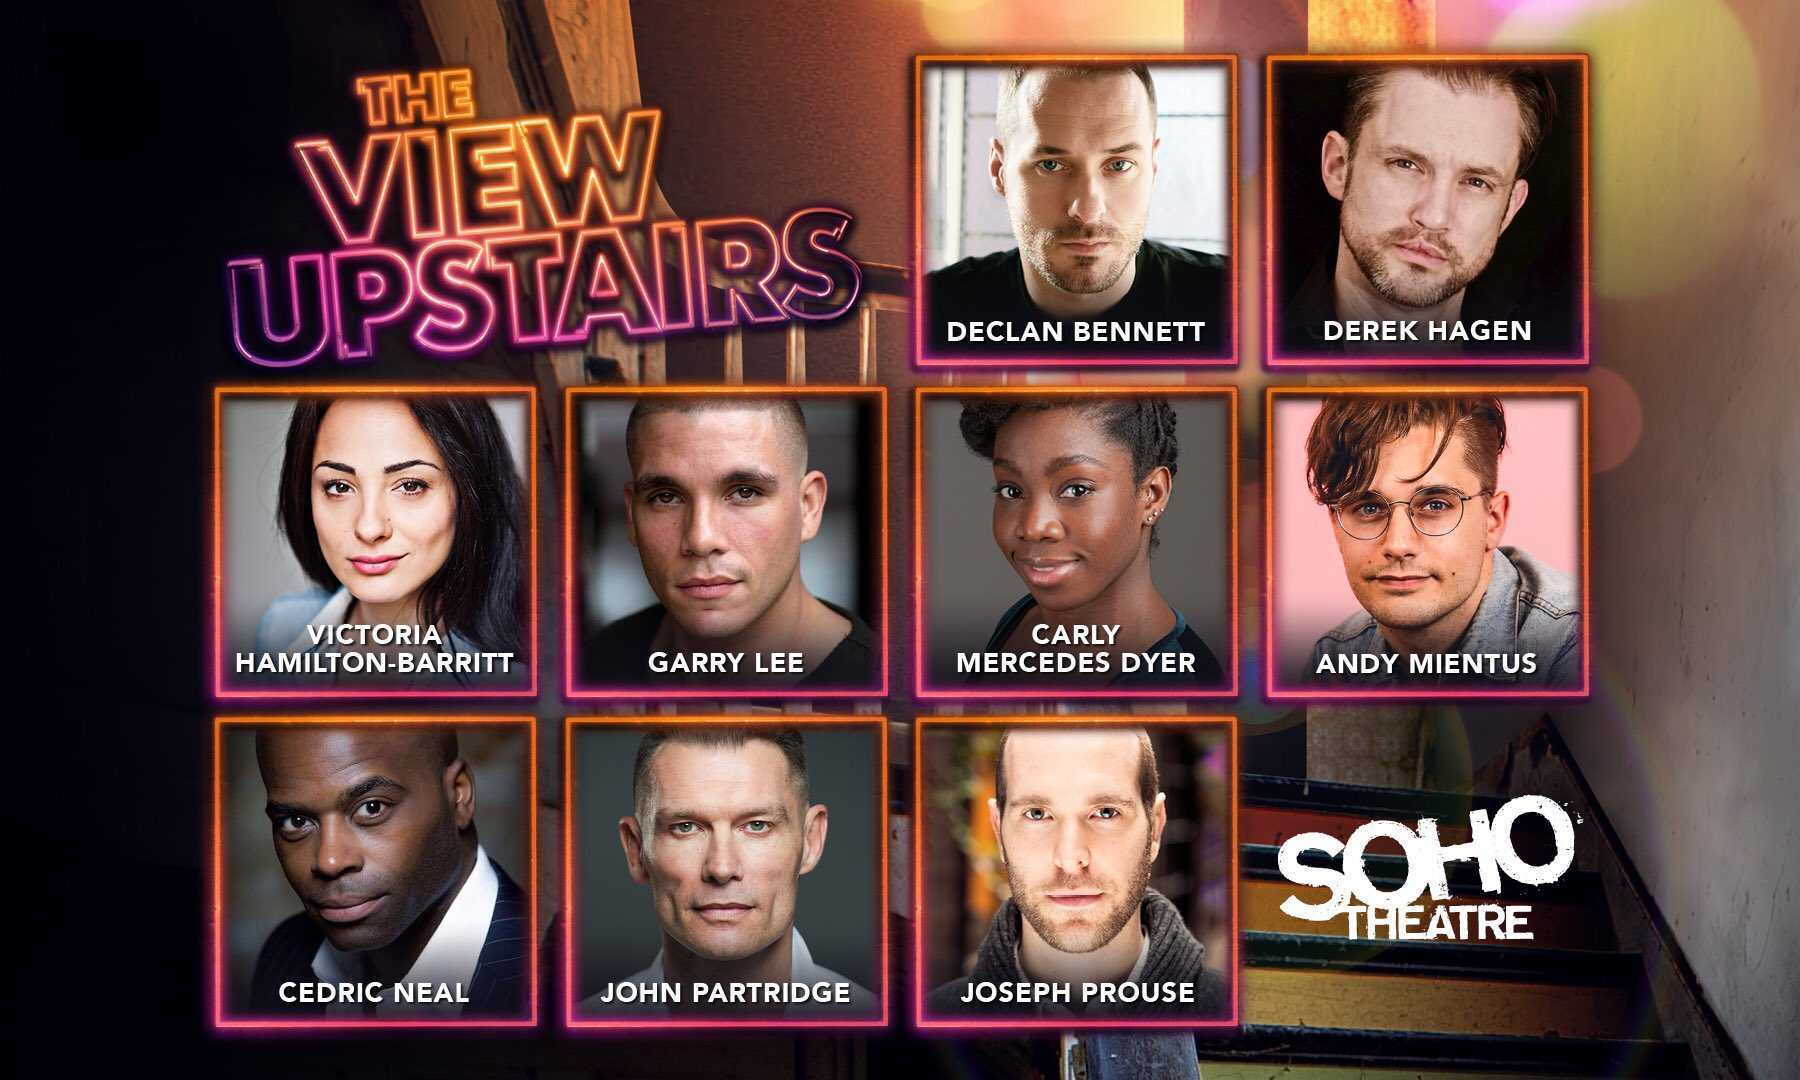 Casting announced for the European premiere of The View UpStairs at the Soho Theatre